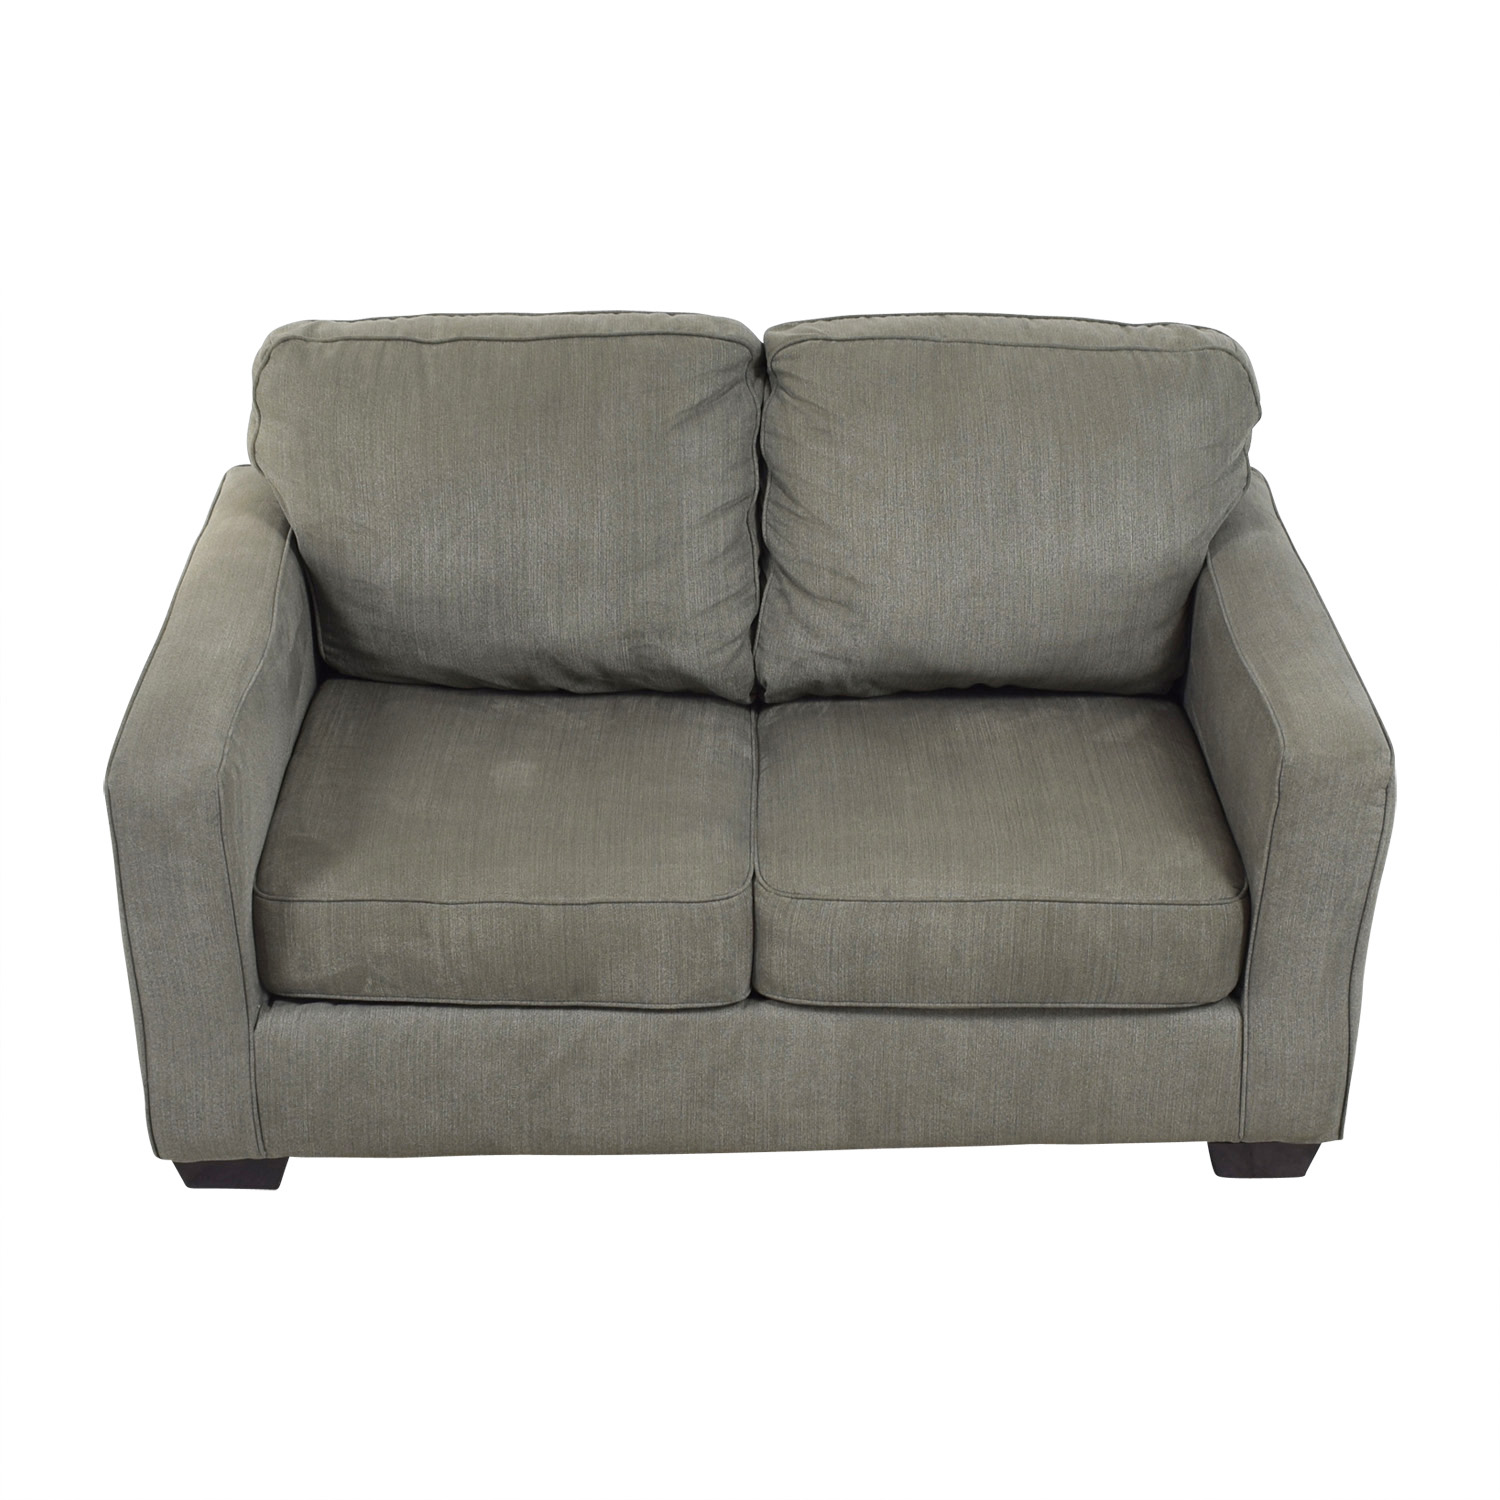 shop Raymour & Flanigan Raymour & Flanigan Slate Grey Two-Cushion Sofa online